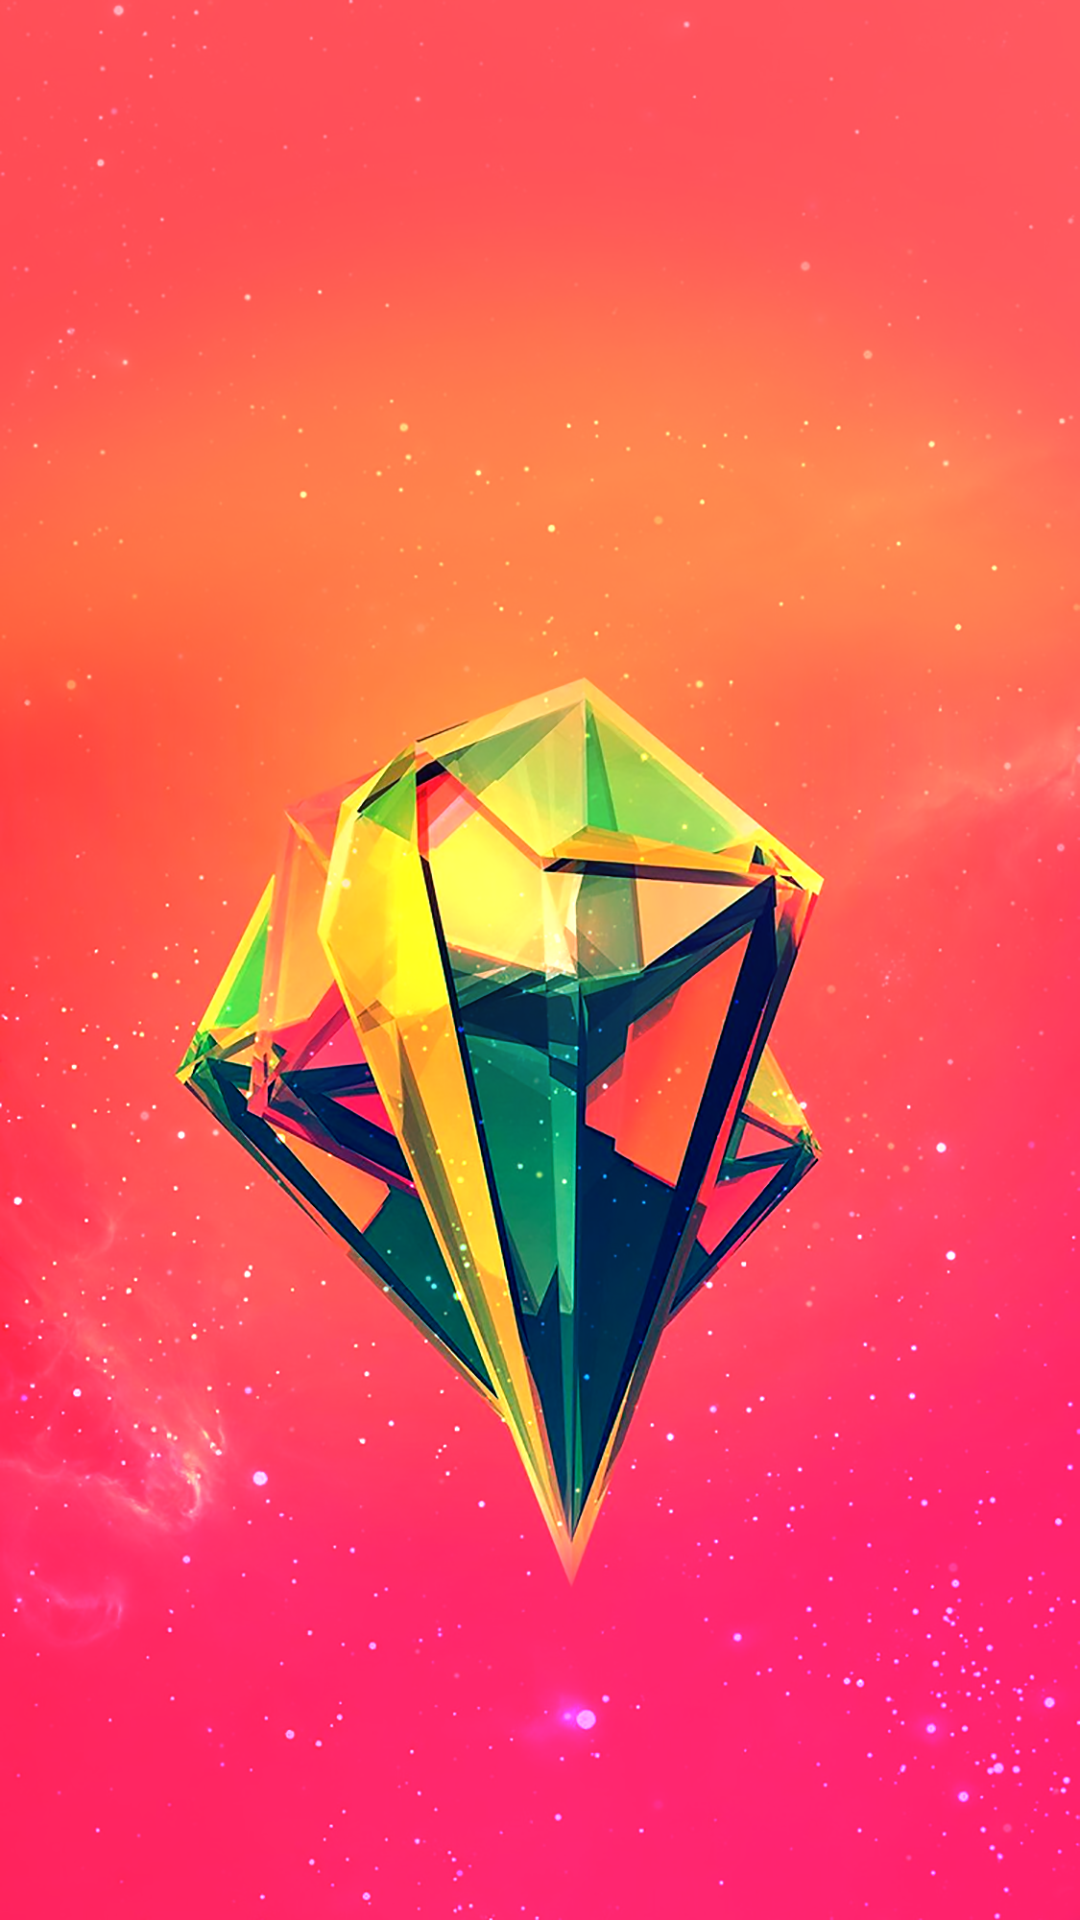 Abstract-Find-more-geometric-wallpapers-for-your-iPhone-Android-@prettywallpaper-wallpaper-wp4803875